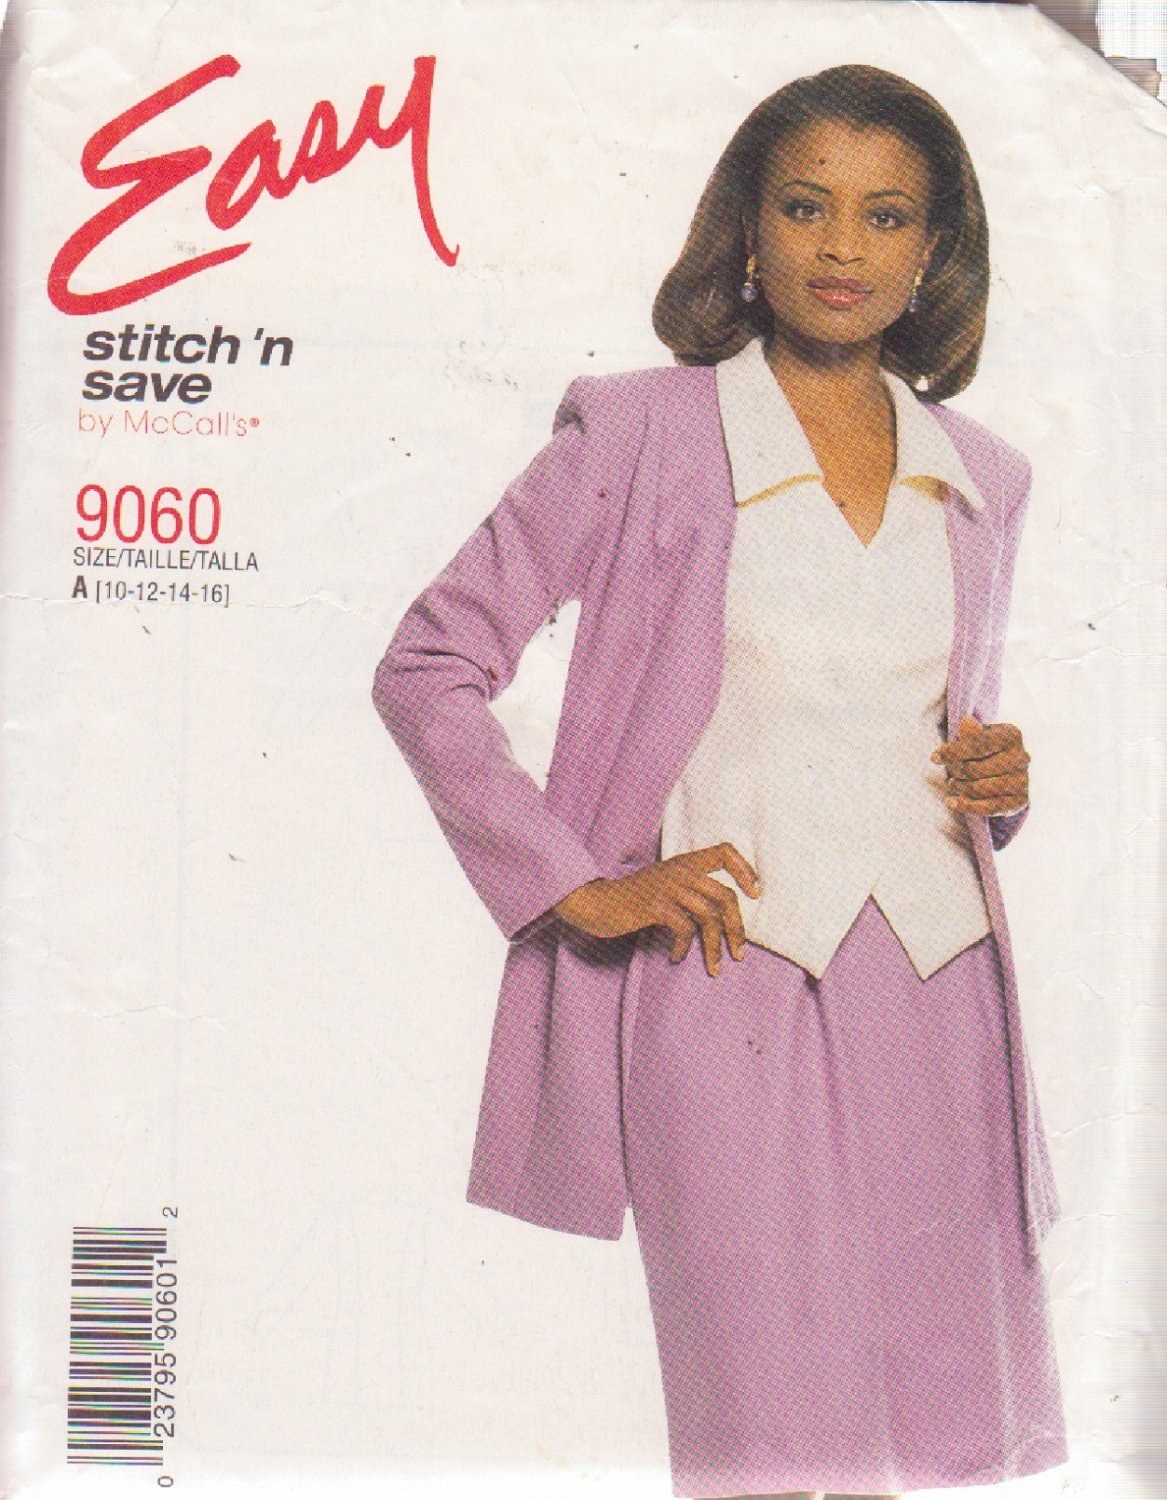 McCALL'S PATTERN 9060 MISSES' PULL ON SKIRT, JACKET AND TOP SIZES 10/12/14/16